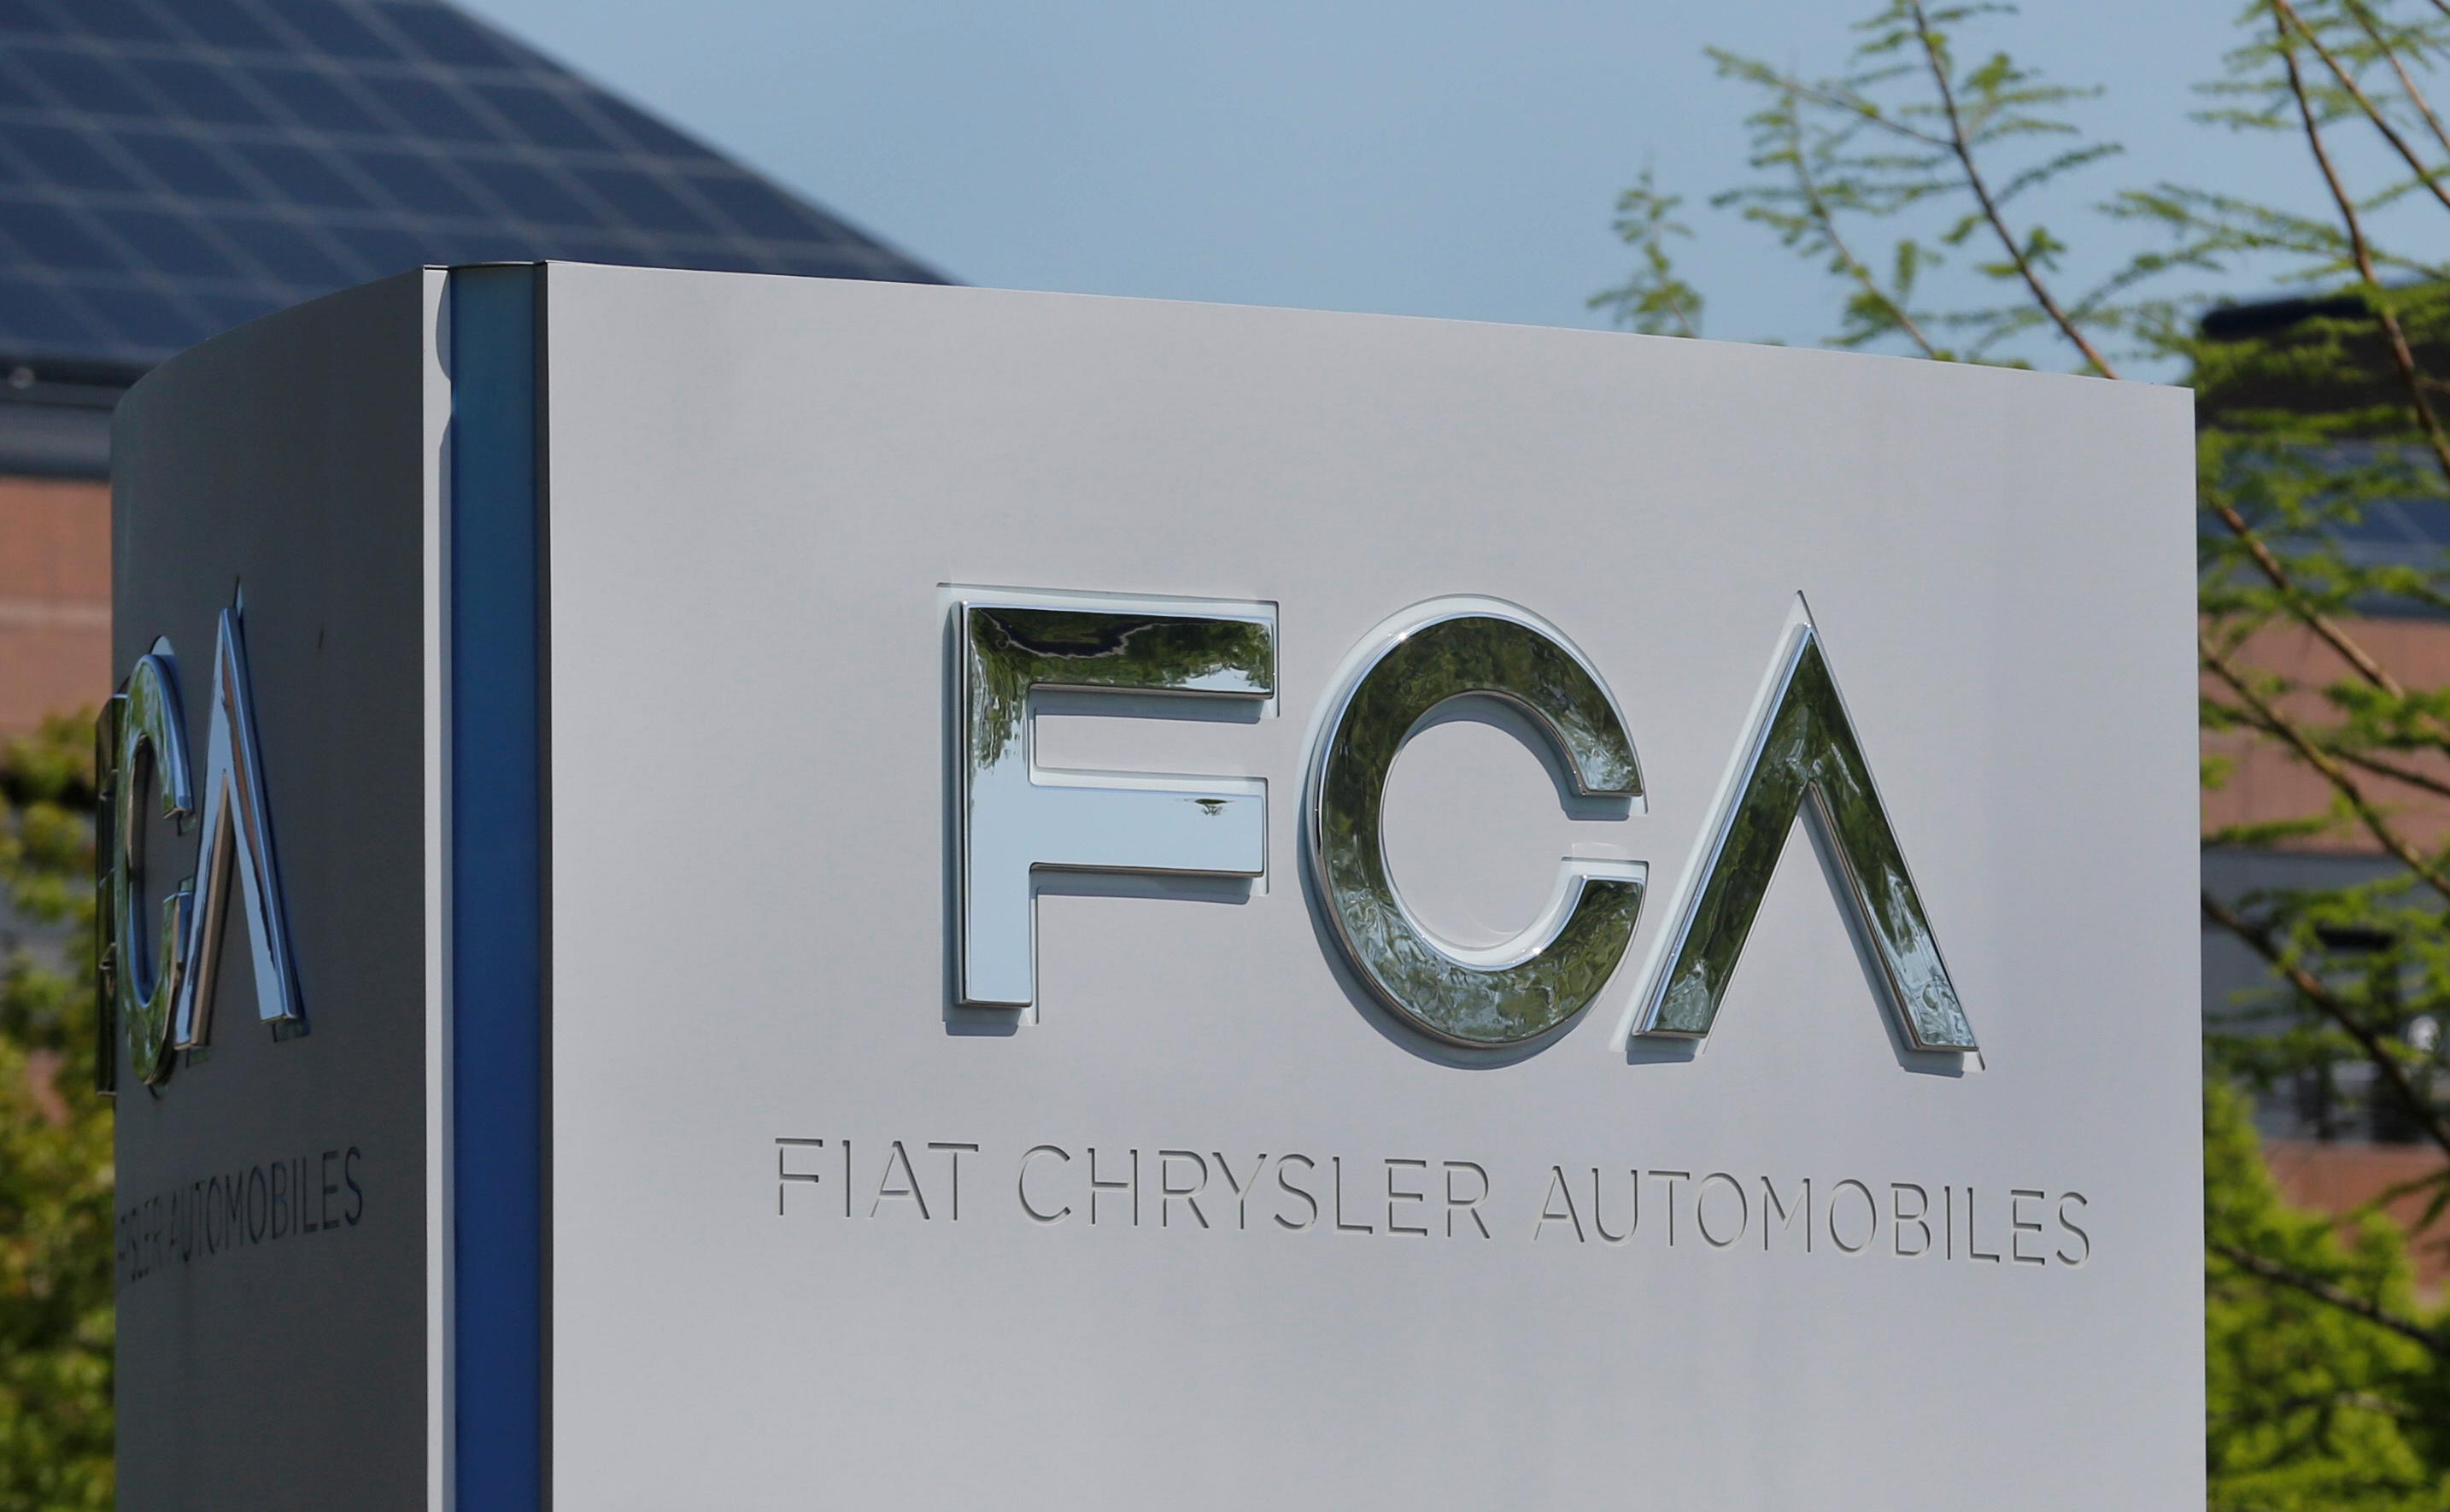 Fiat Chrysler and Renault pursue $35 billion merger to combat car industry upheaval